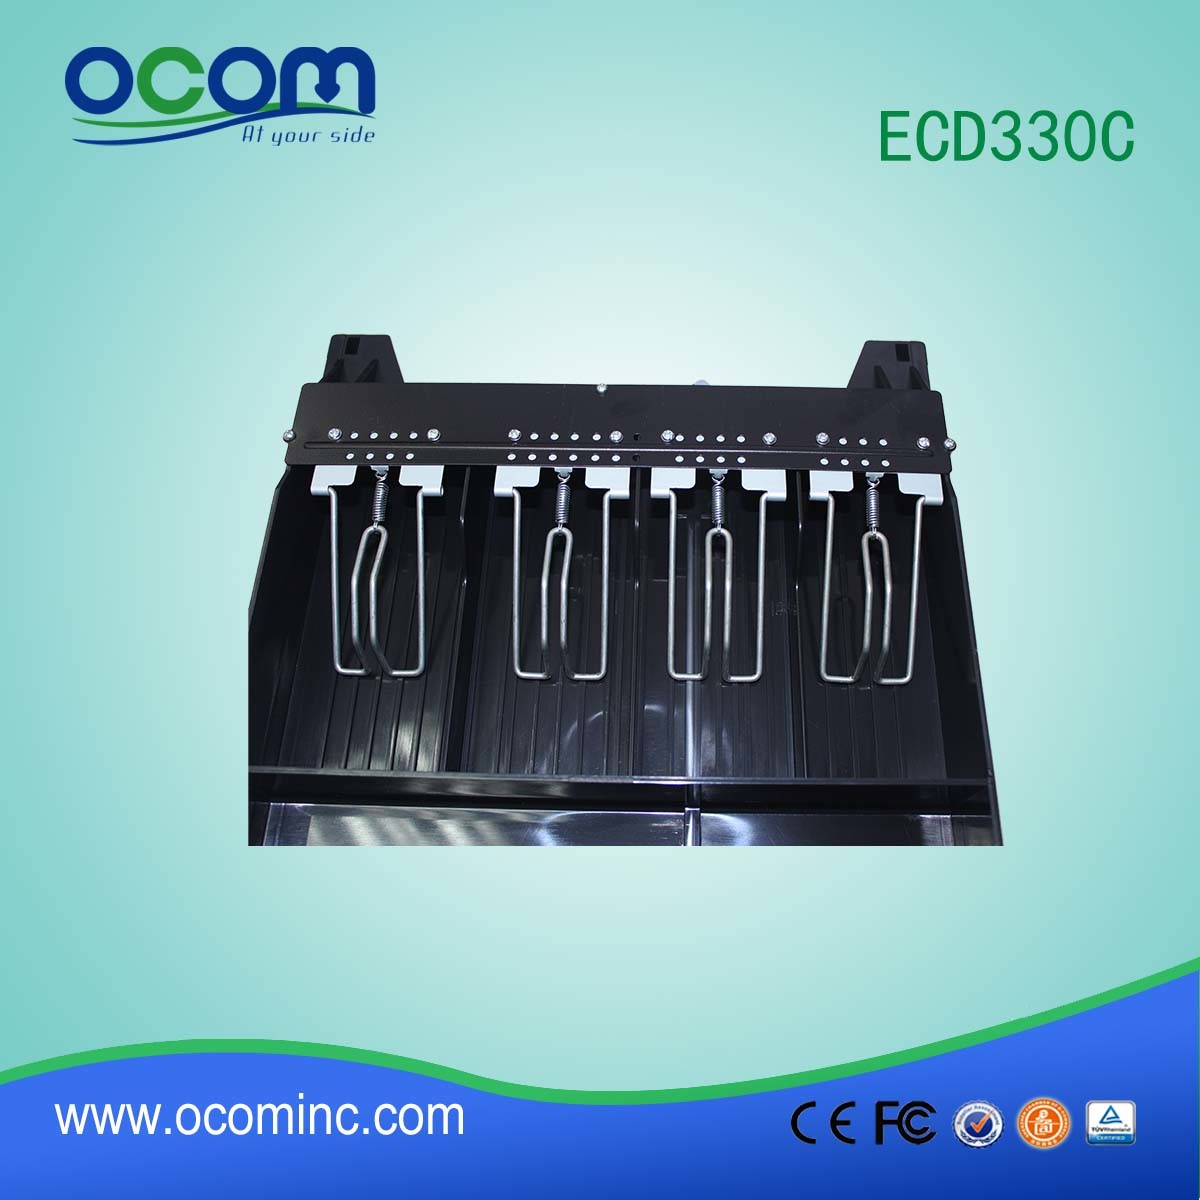 Rj11 12V Metal Cash Drawer (ECD330C)